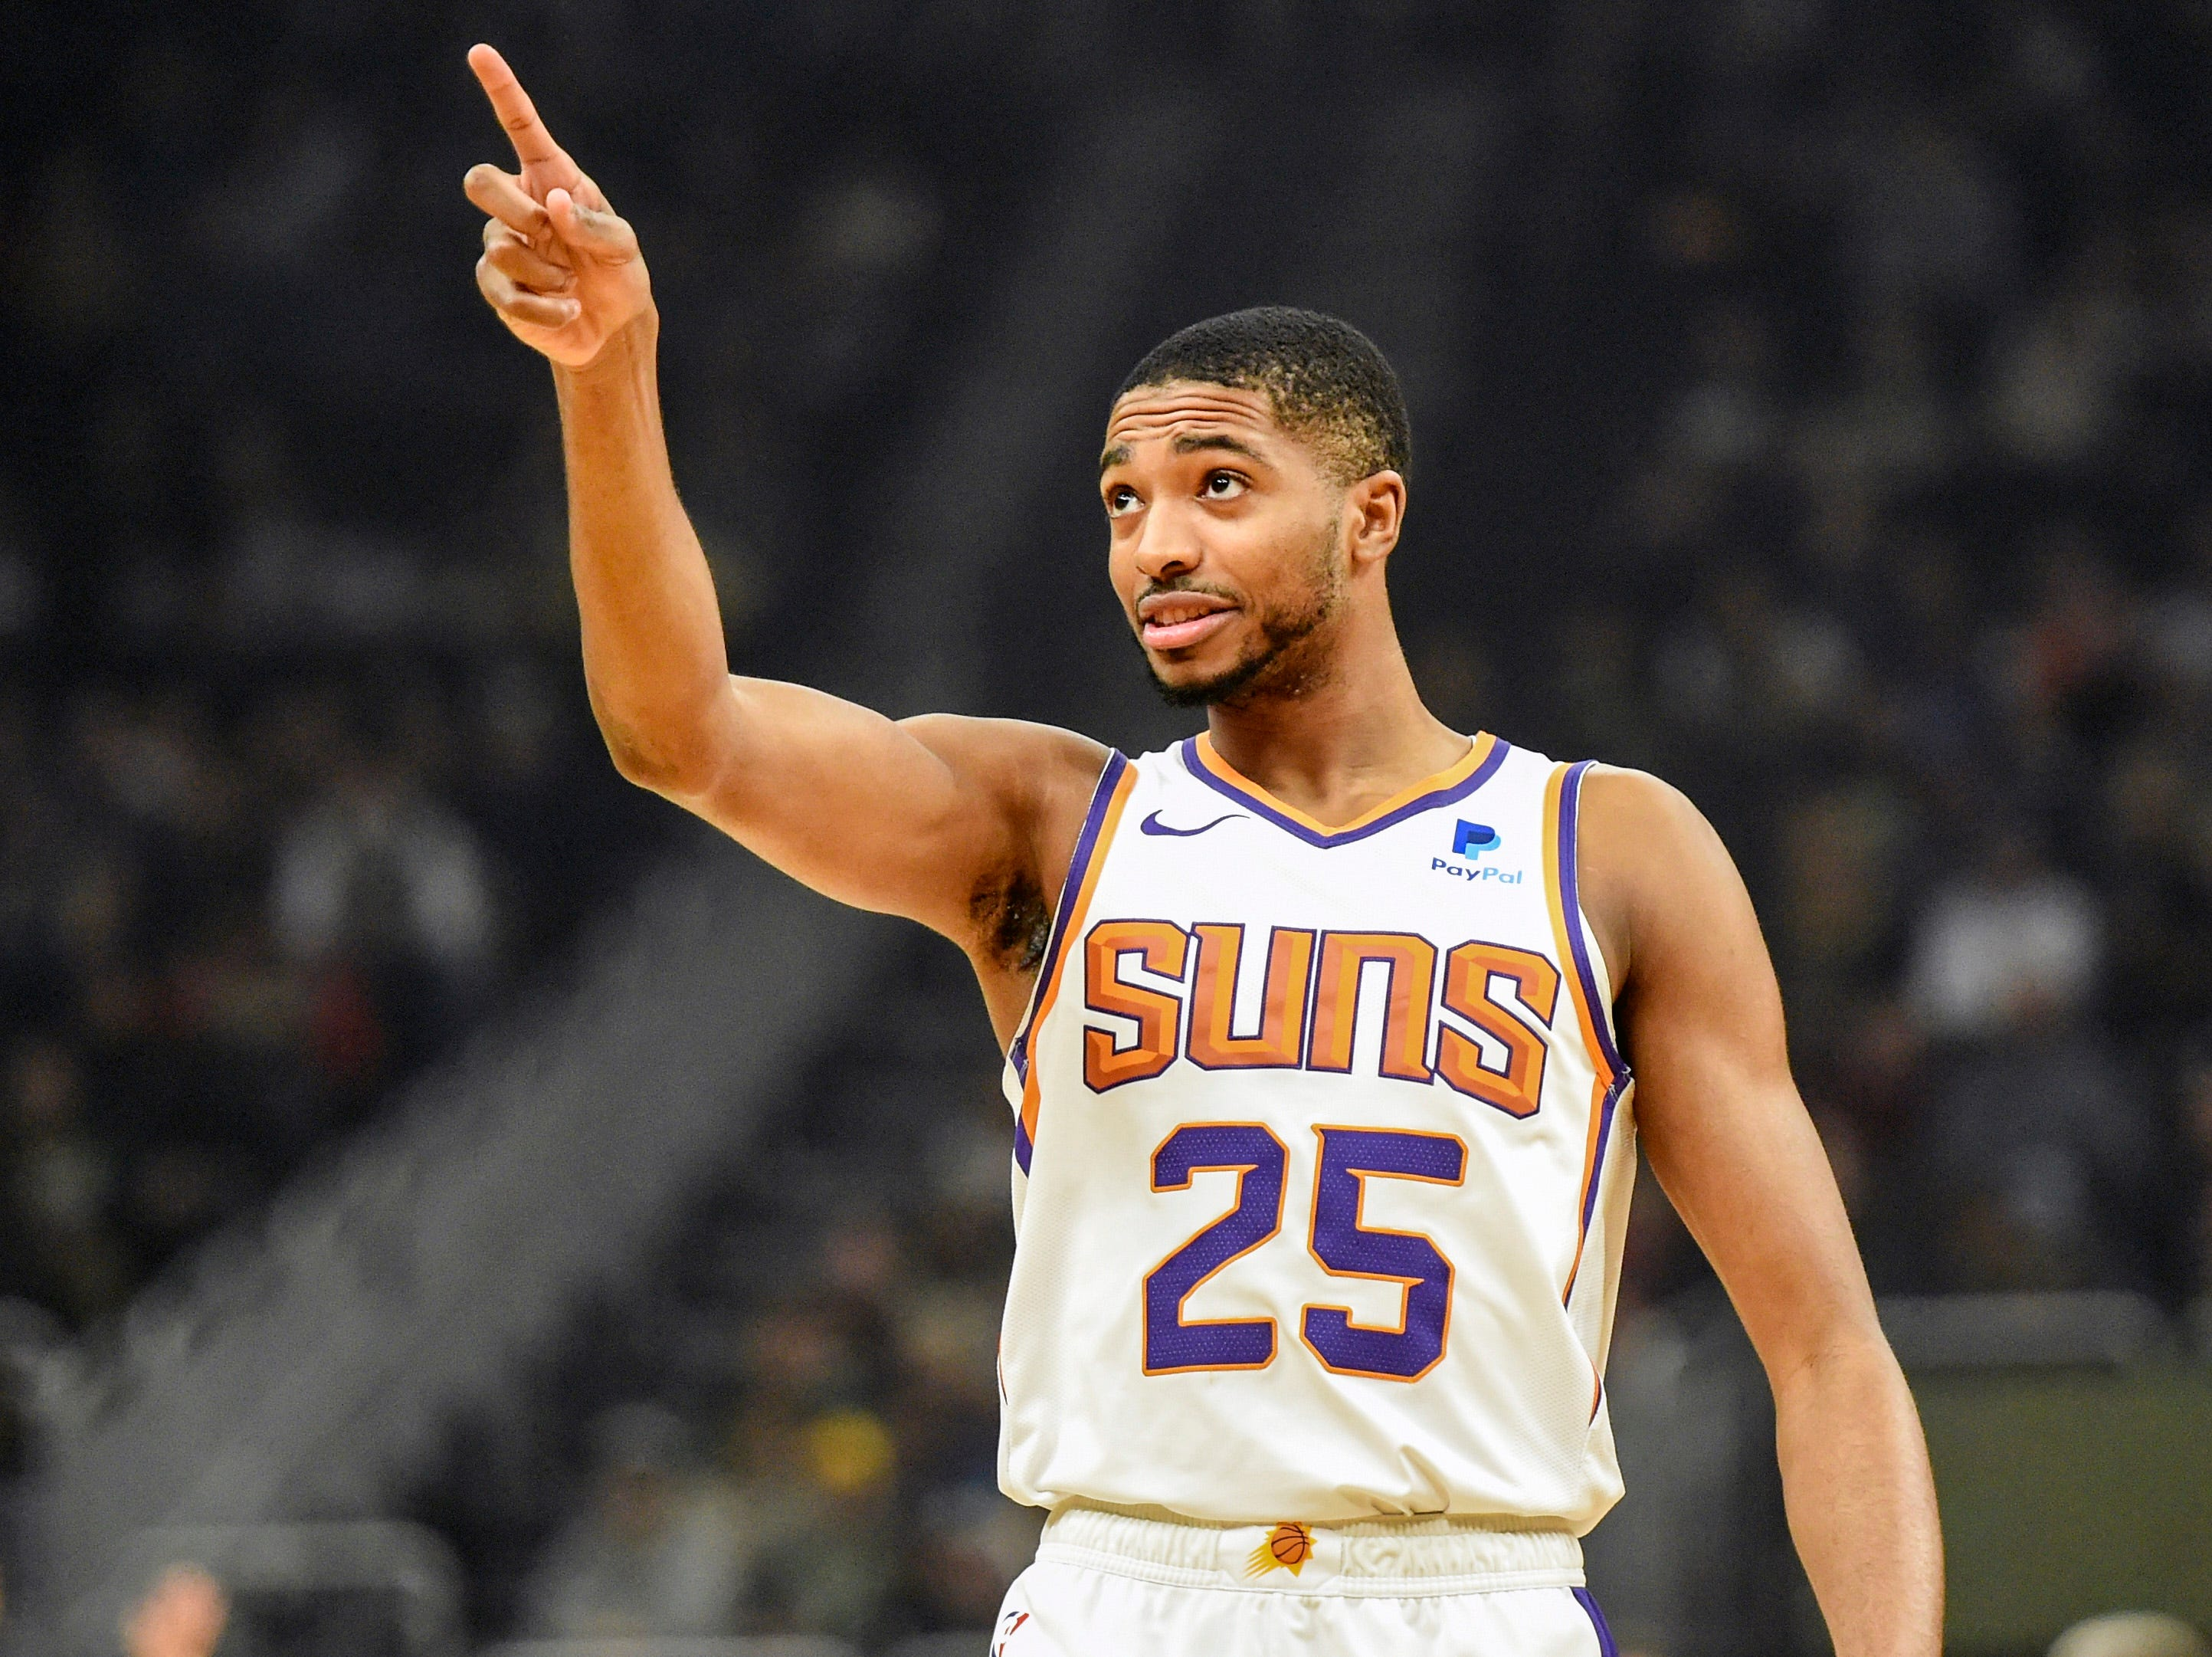 Suns forward Mikal Bridges gestures during the first quarter of a game Nov. 23 against the Milwaukee Bucks.